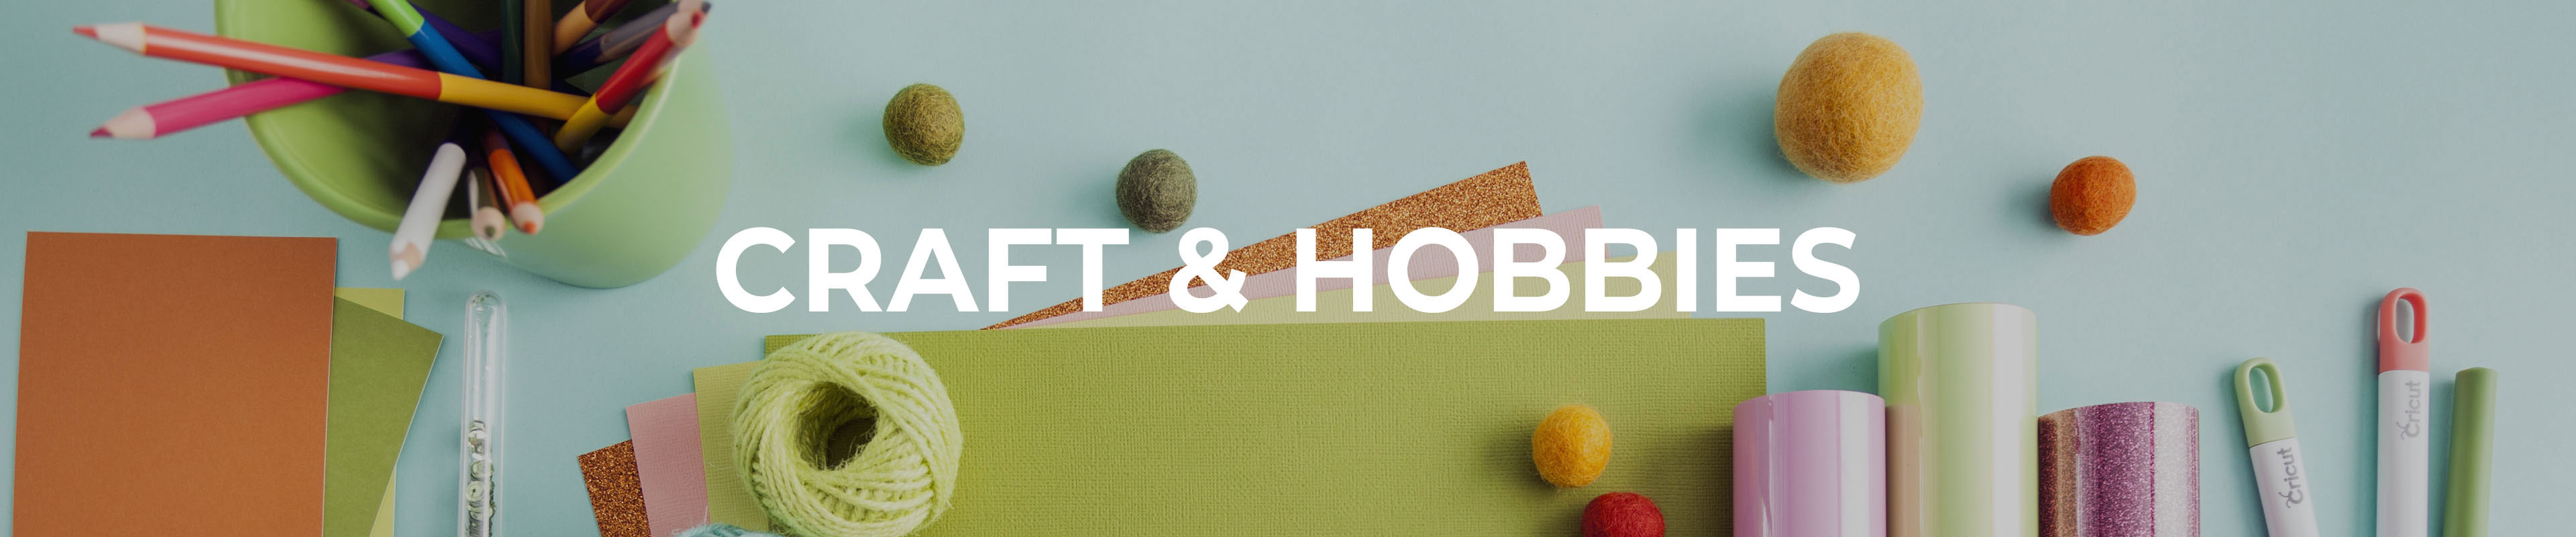 Shop Our Craft & Hobbies Range